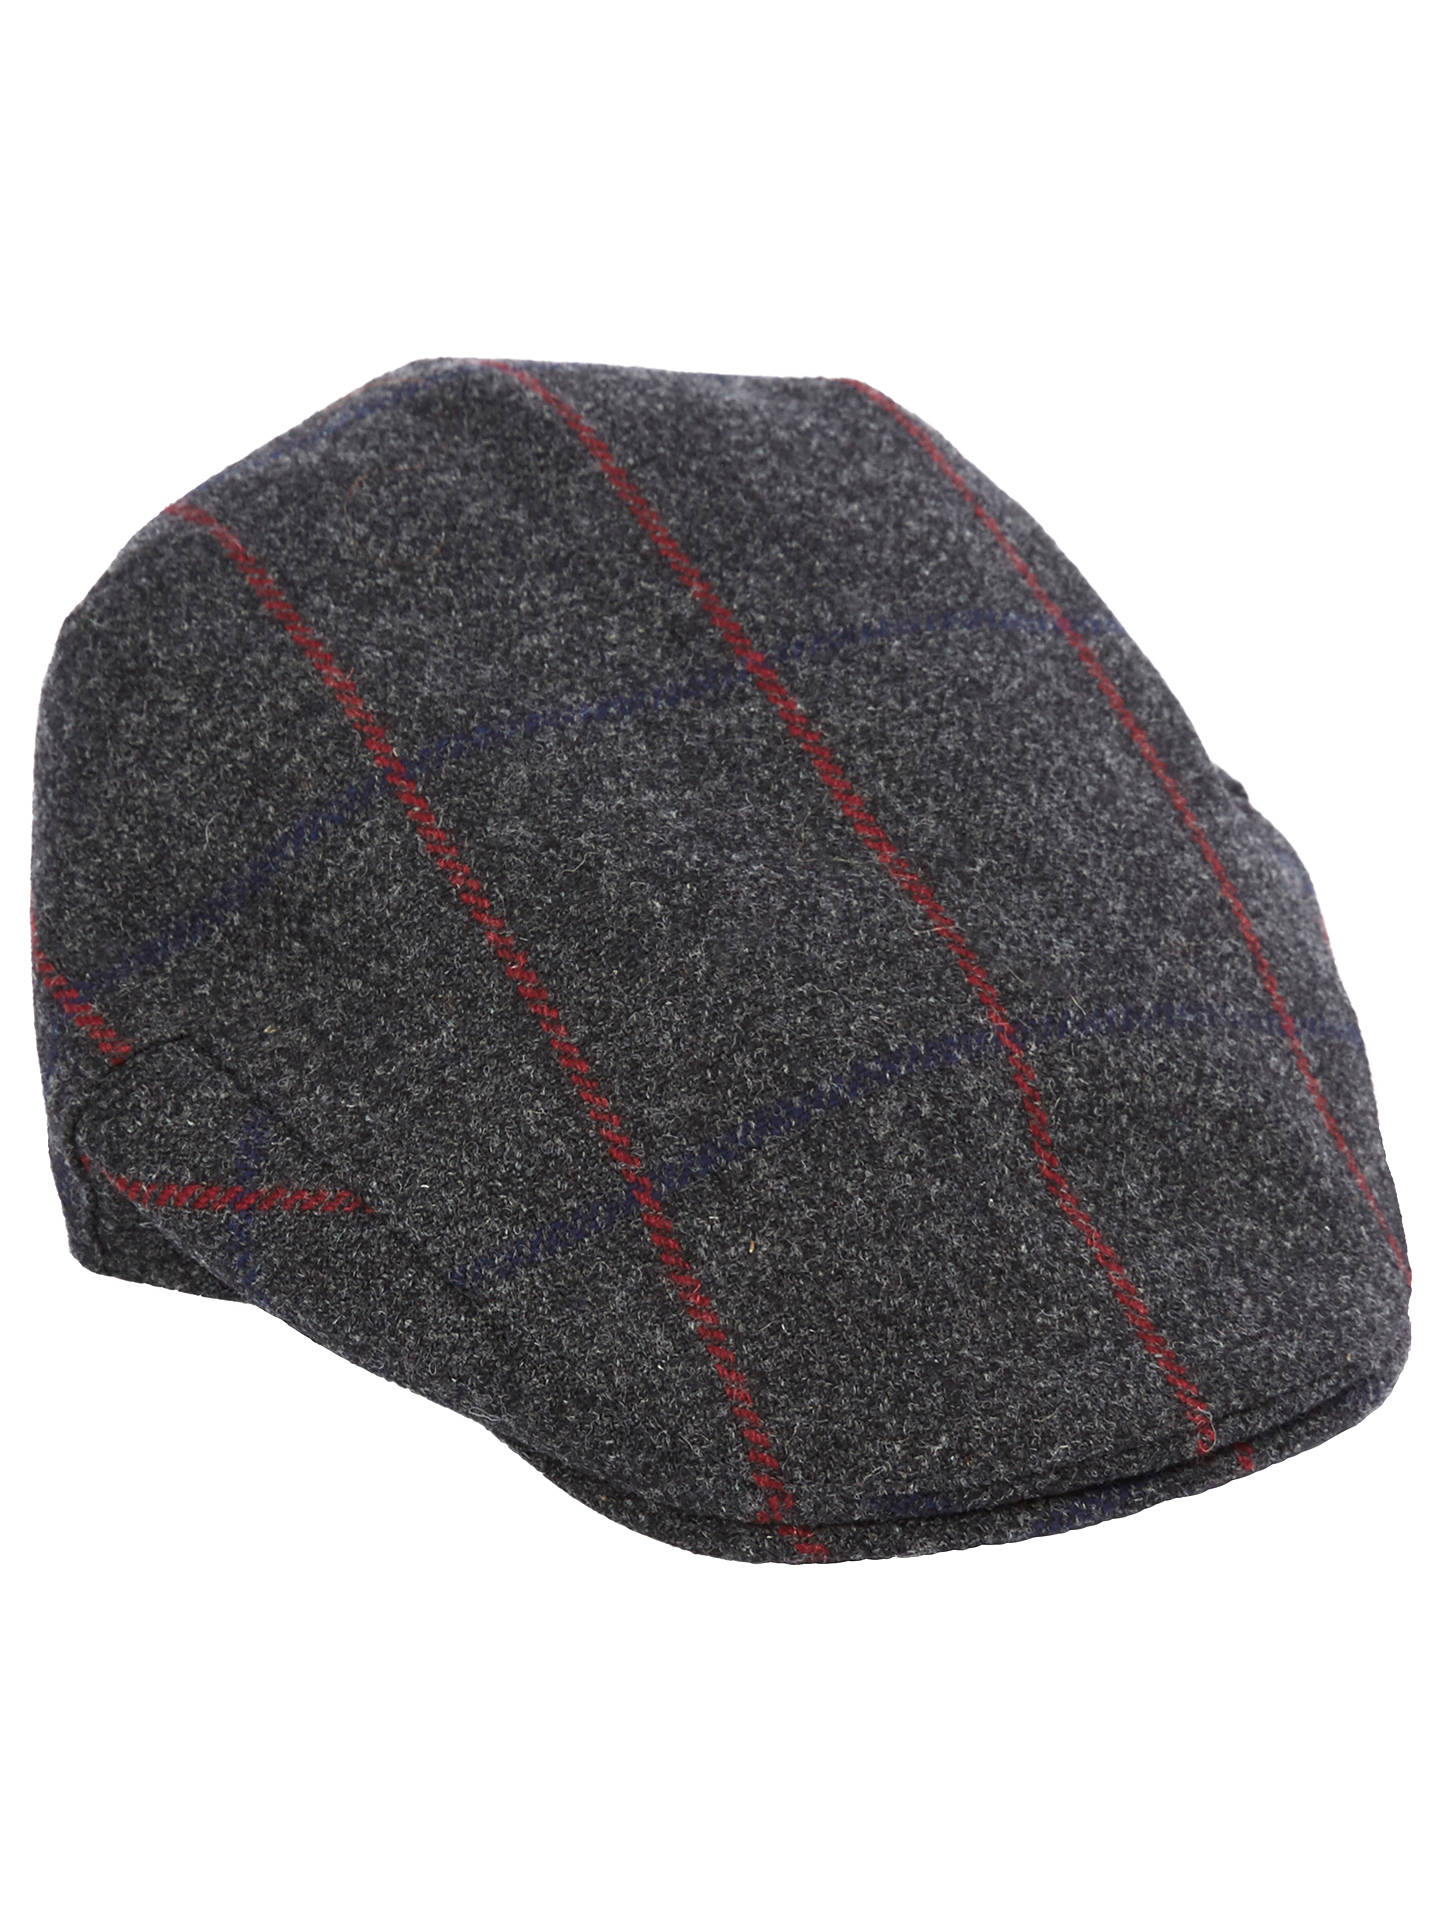 BuyChristys  Balmoral Wool Tweed Flat Cap 35d82b08a59e